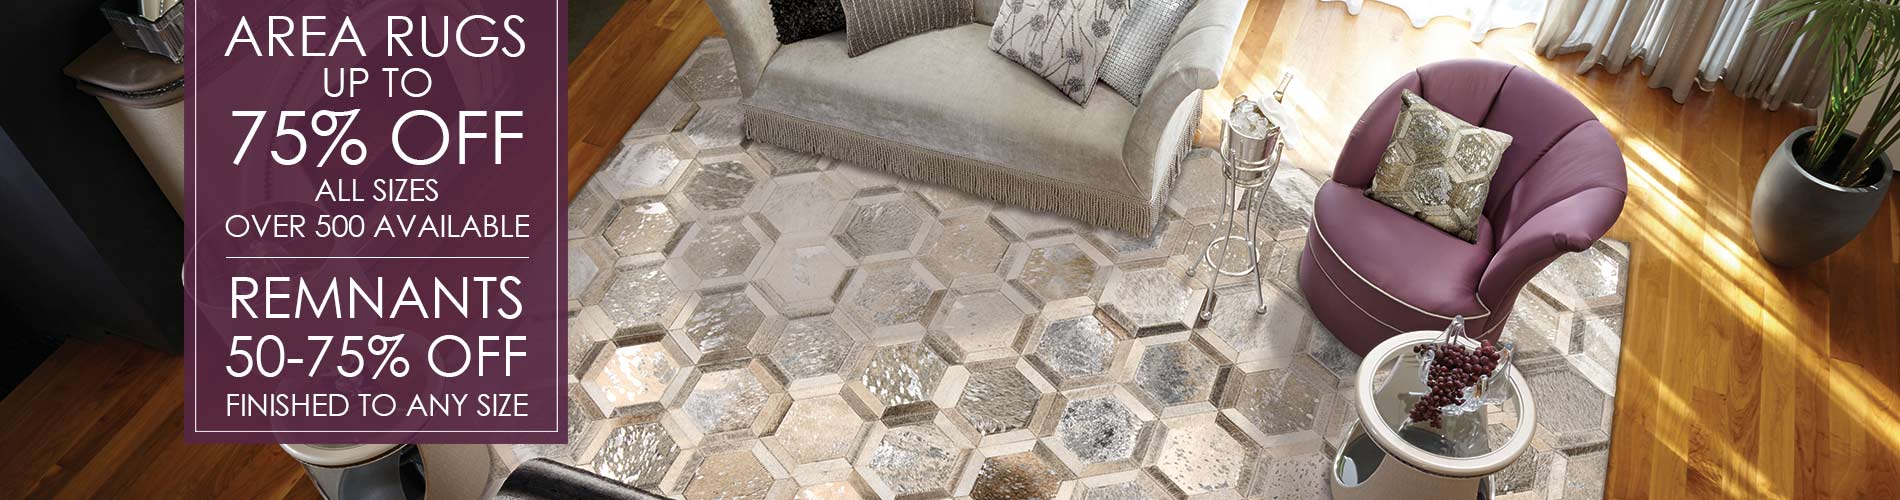 area rugs up to 75% off all sizes  over 500 available  remnants 50 - 75% off  finished to any size